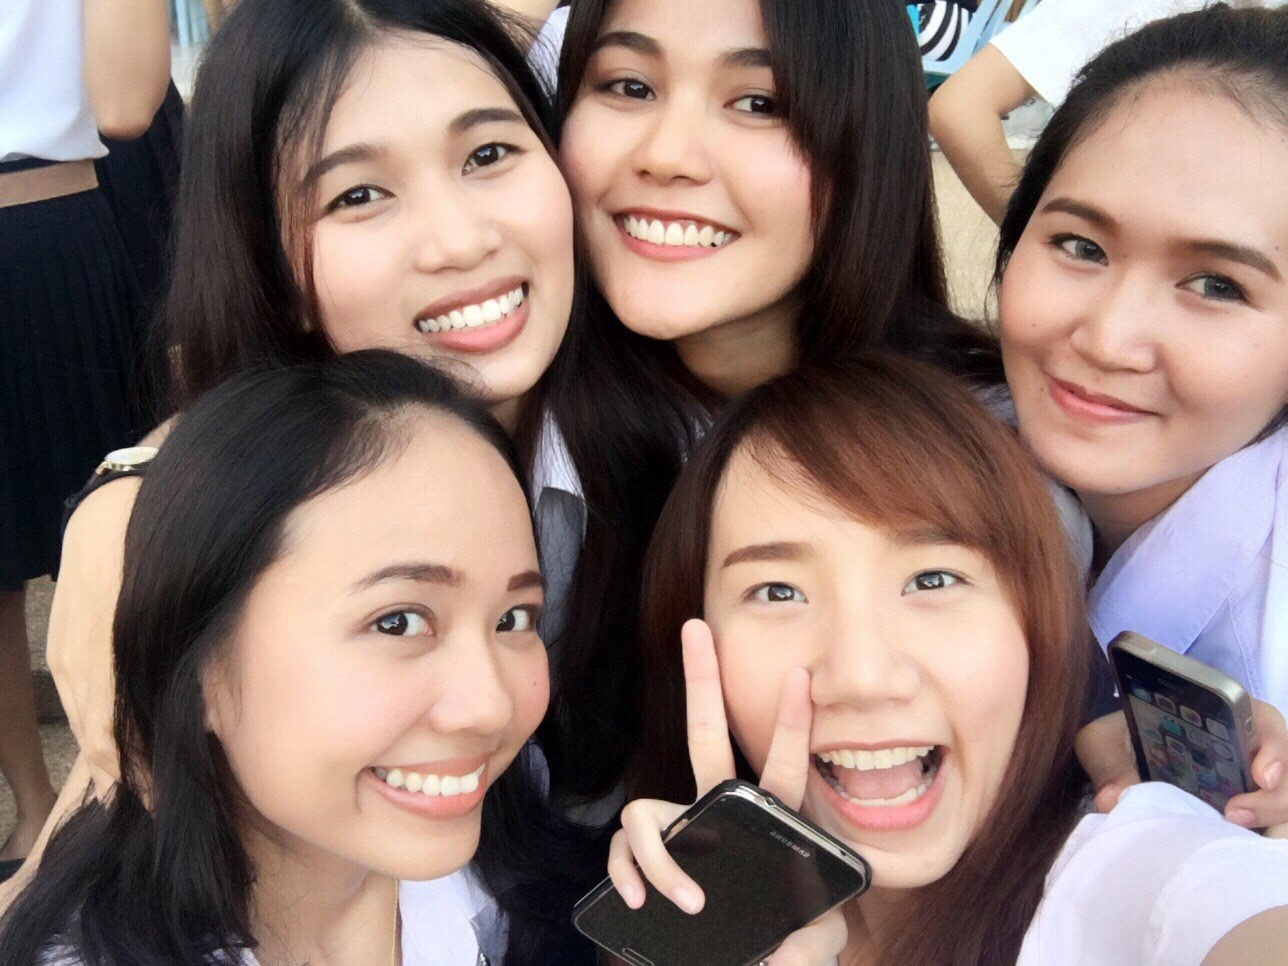 a group of Thai girls smiling